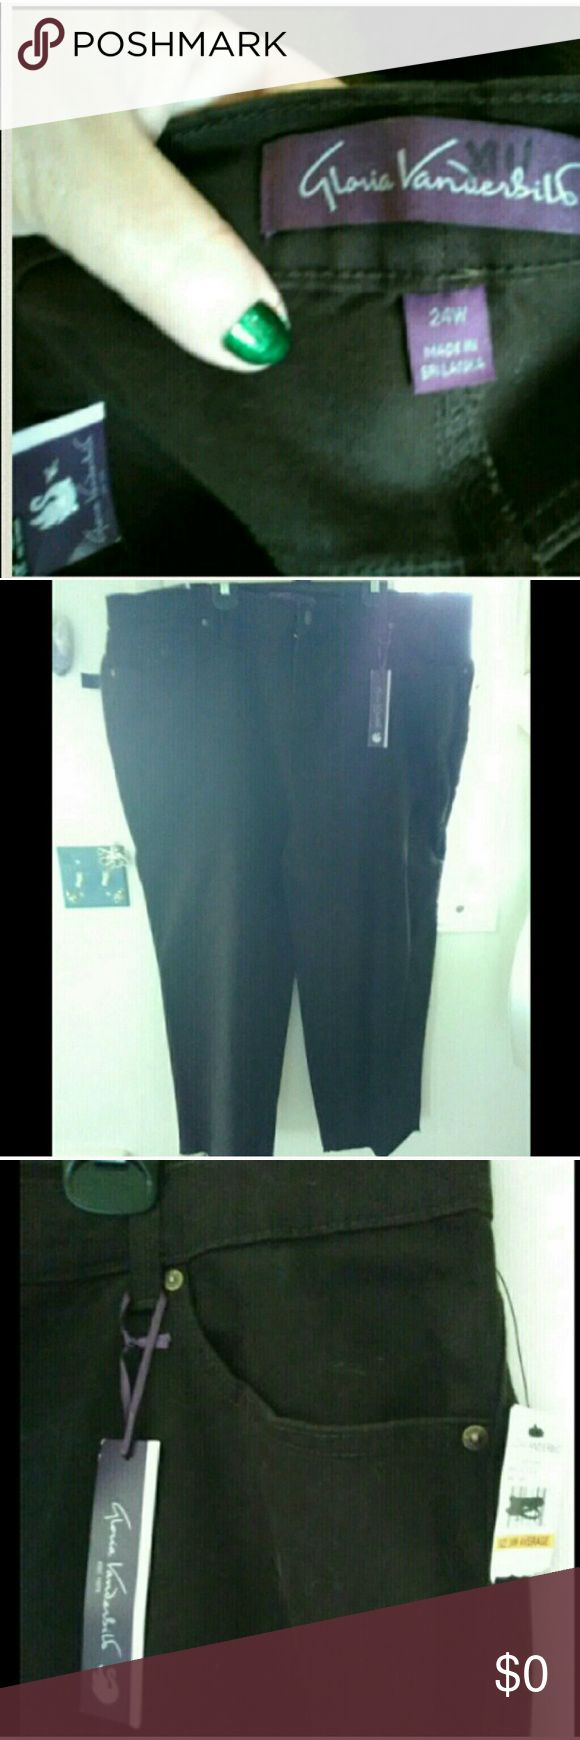 """NWT JEANS 24W Gloria Vanderbilt dark brown PANTS NEED SOMEONE THAT SEWS, SEAMSTRESS, BOTTOM LEGNTH HAS BEEN CUT OFF SOME BUT NOT SEWN. PIC #8. Size 24W, Very dark brown Gloria Vanderbilt jeans. Inseam 23"""", labeled average, waist 46"""" contact me w/ any questions. 2 pockets in the back & front. Cute little swan on 1 front pocket. Very dark brown jeans. I took them outside in photo #7 to try to get there color in the sunlight. I did not see any flaws on these besides the bottom that needs sewn…"""